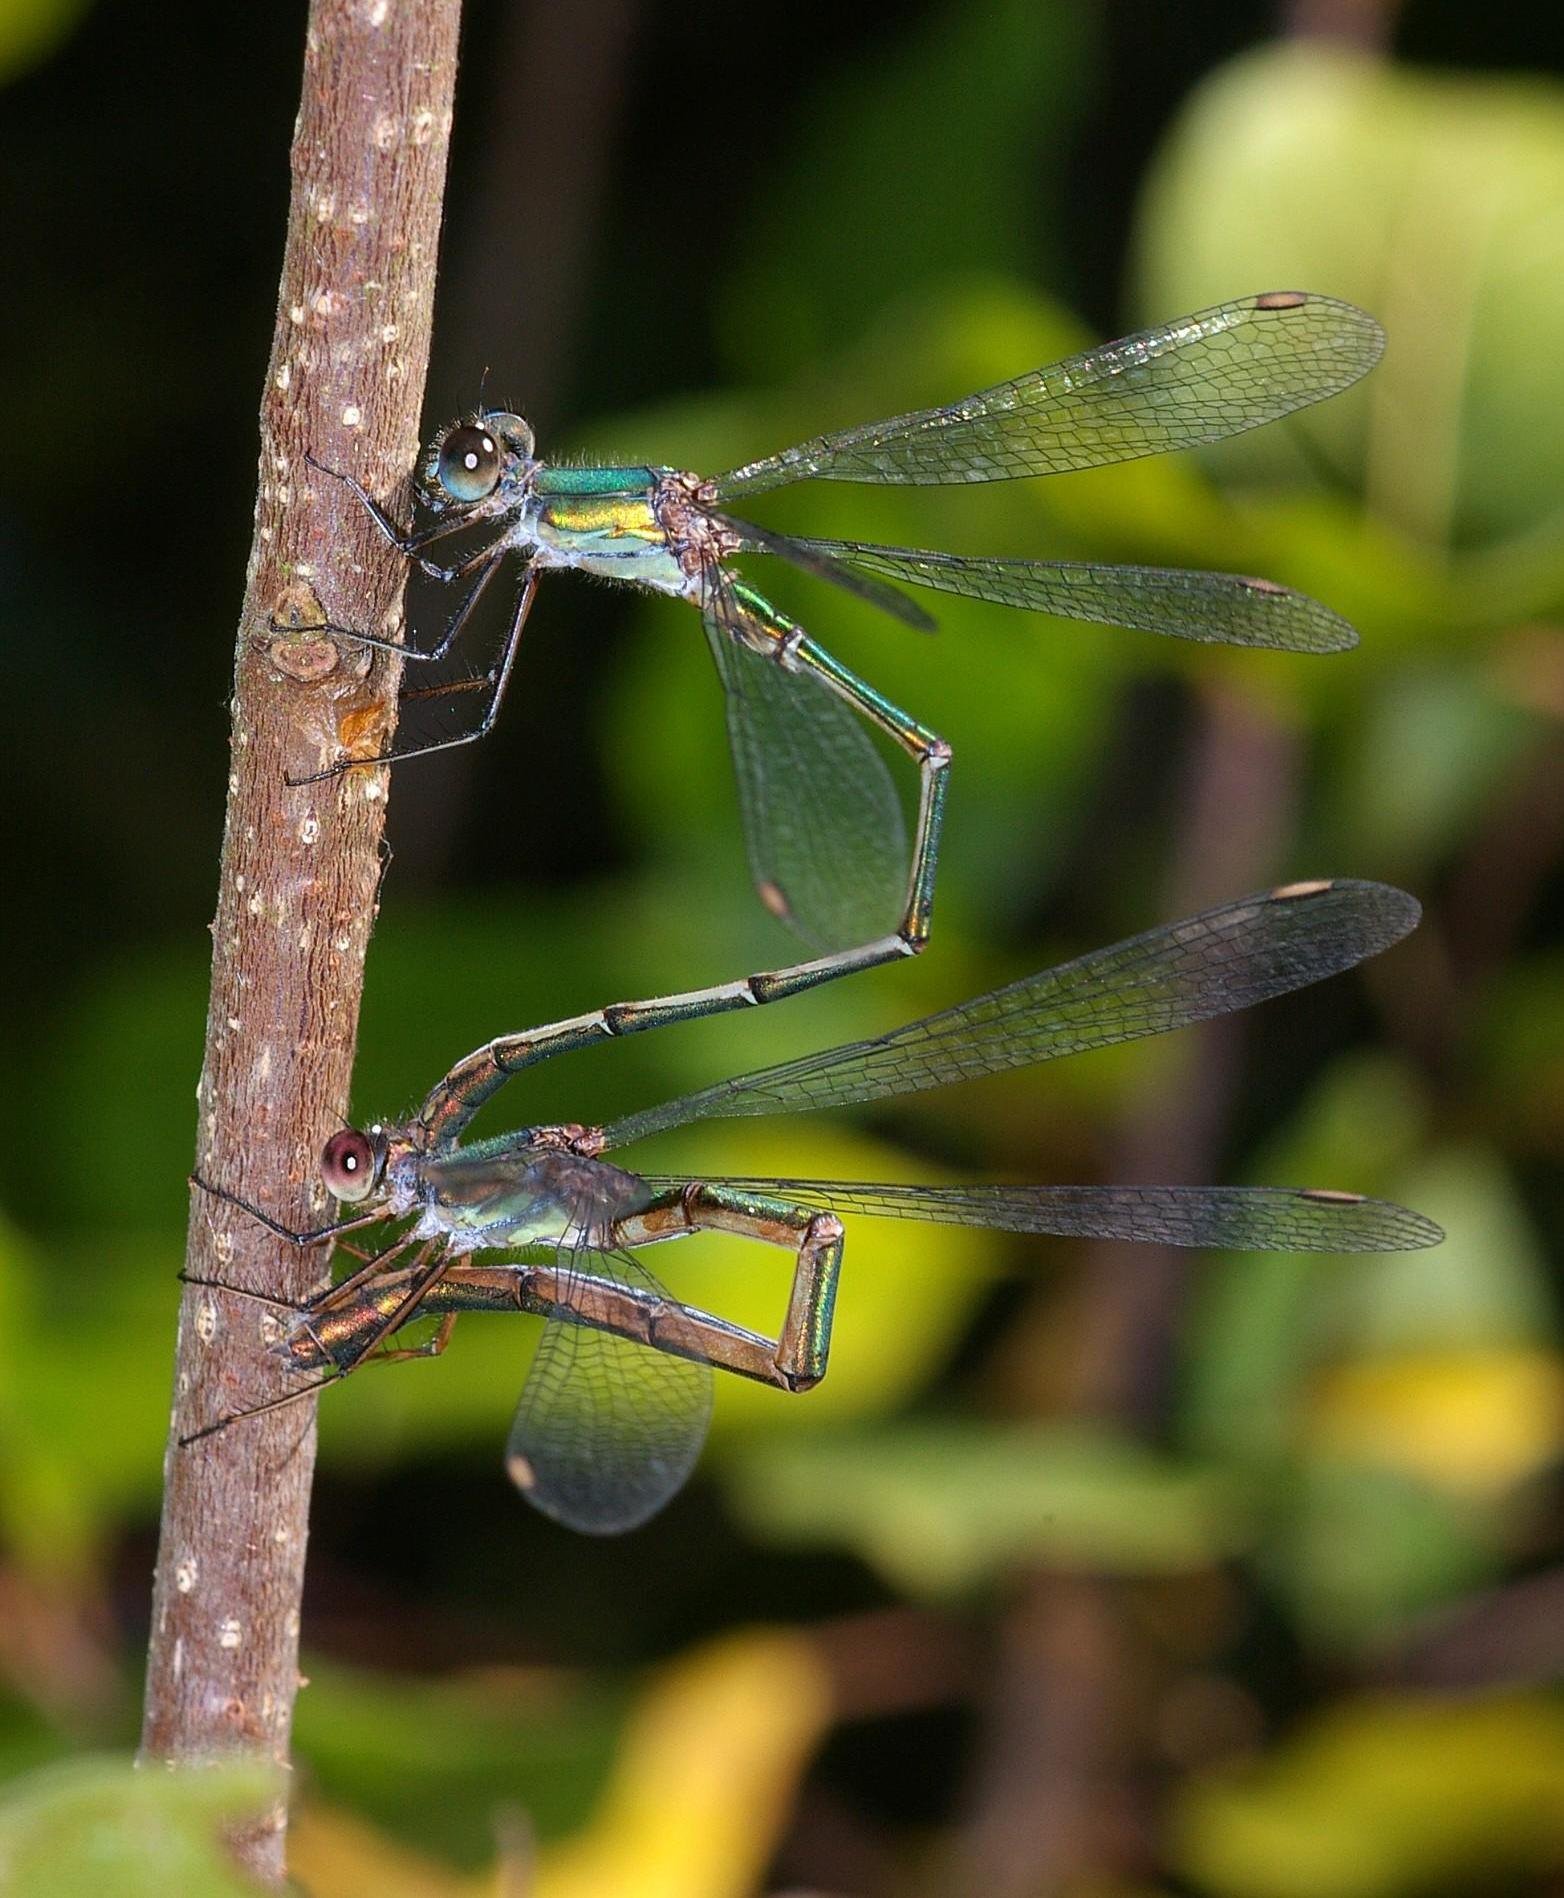 Pair of willow emeralds, Chalcolestes viridis, in tandem, laying eggs into a twig.